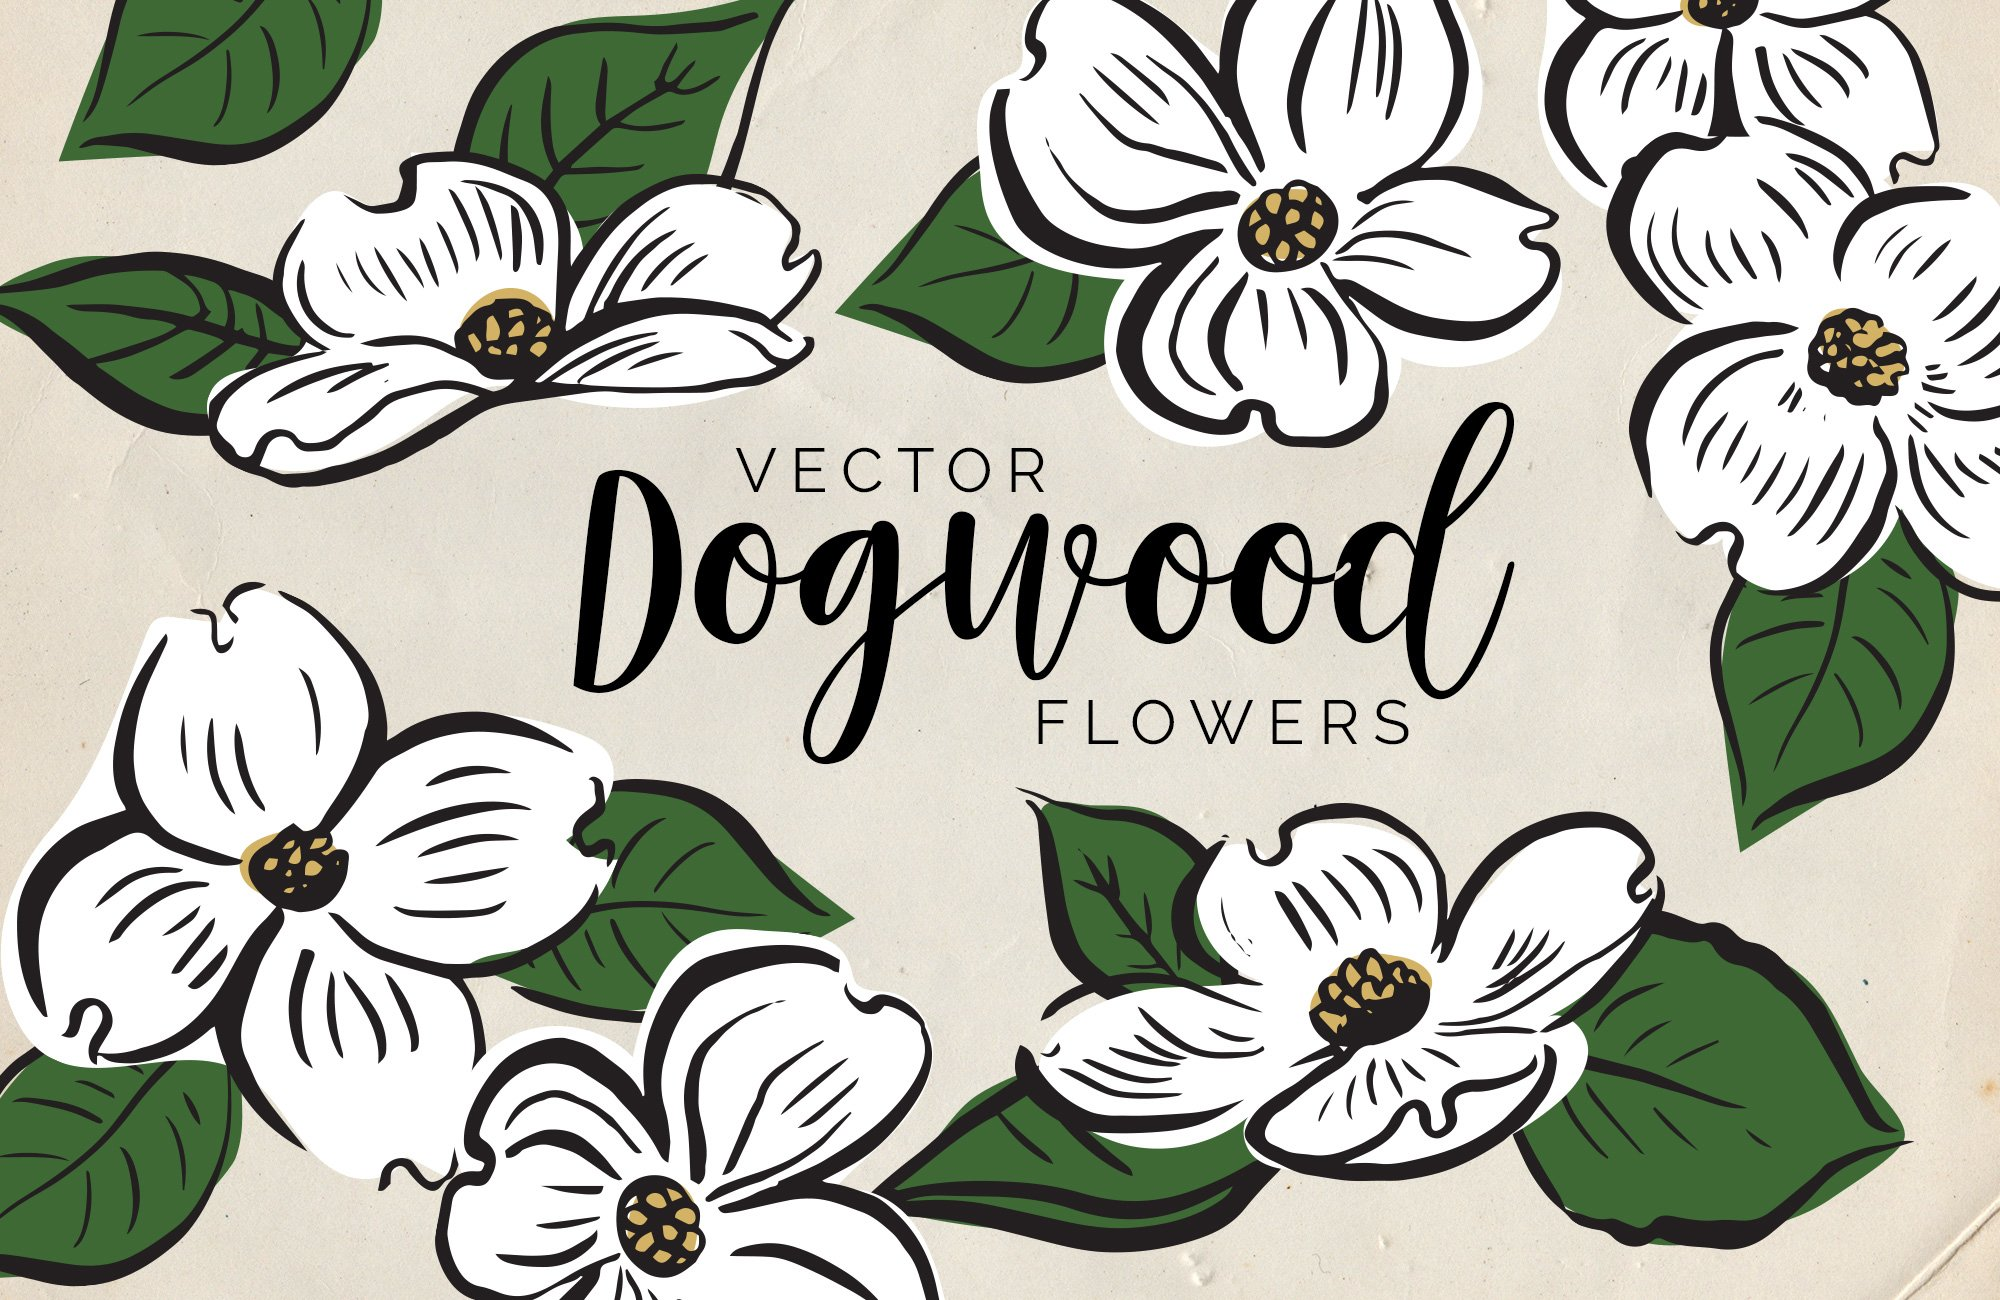 Dogwood Flower Line Drawing : Vector dogwood flowers illustrations creative market